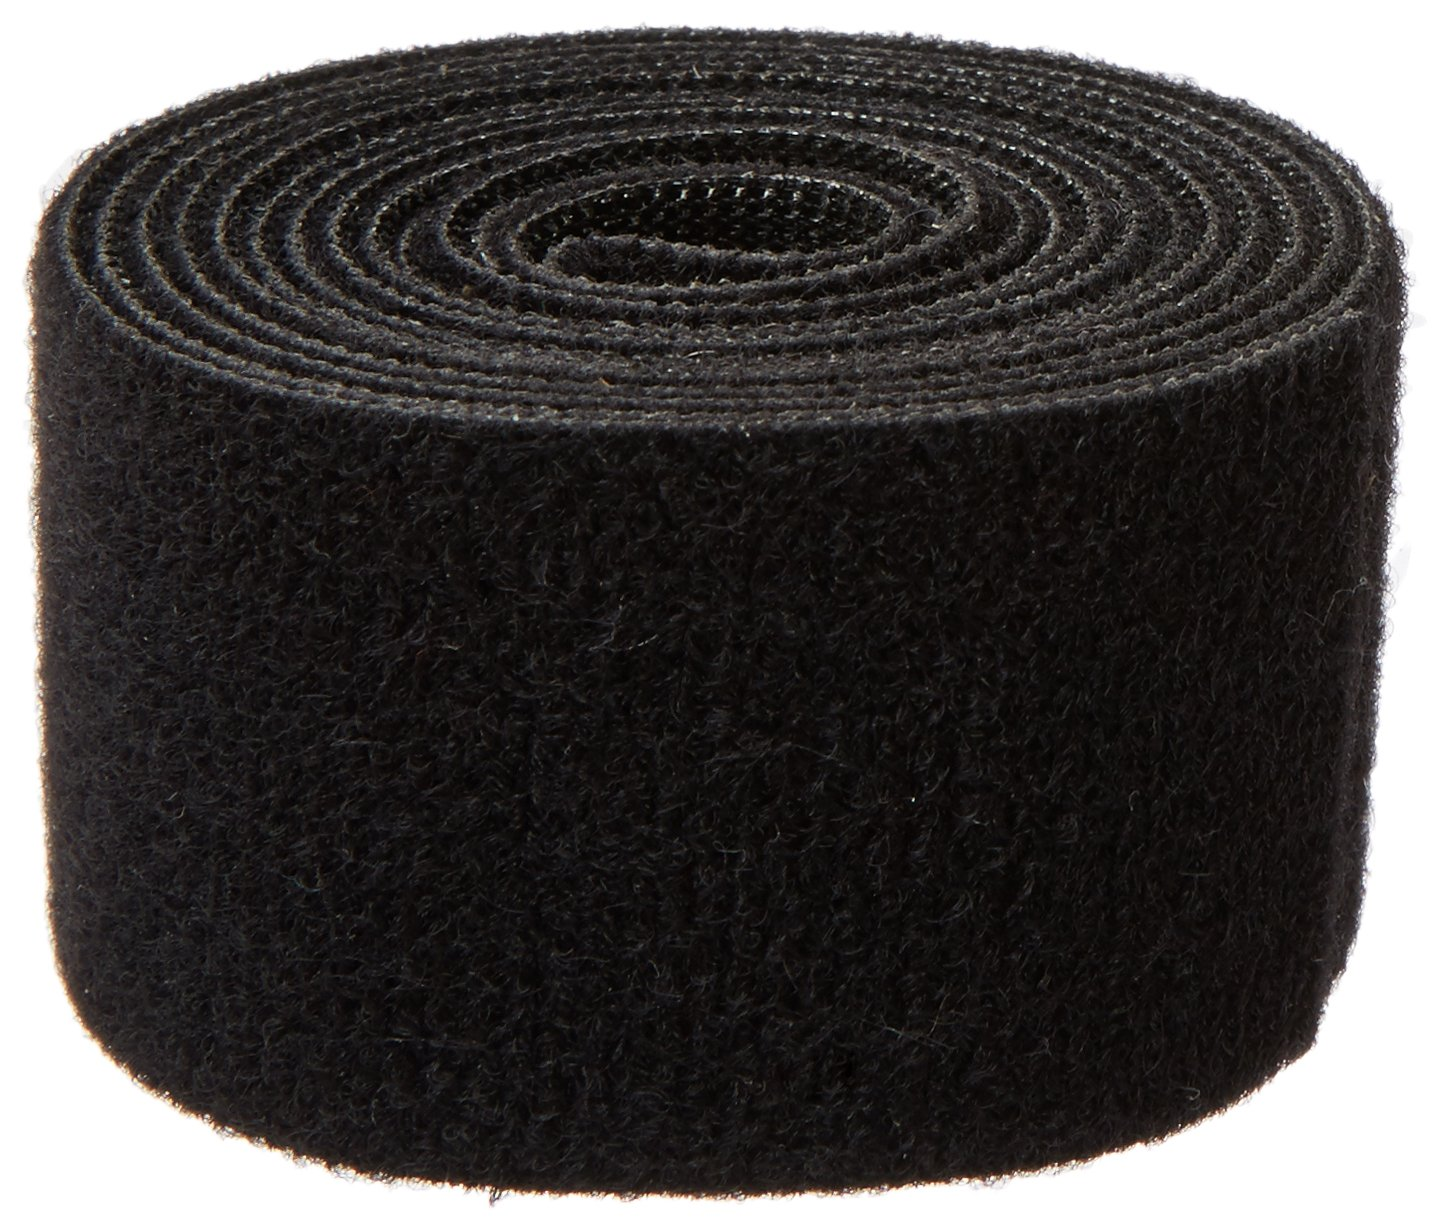 the gallery for gt wide velcro straps